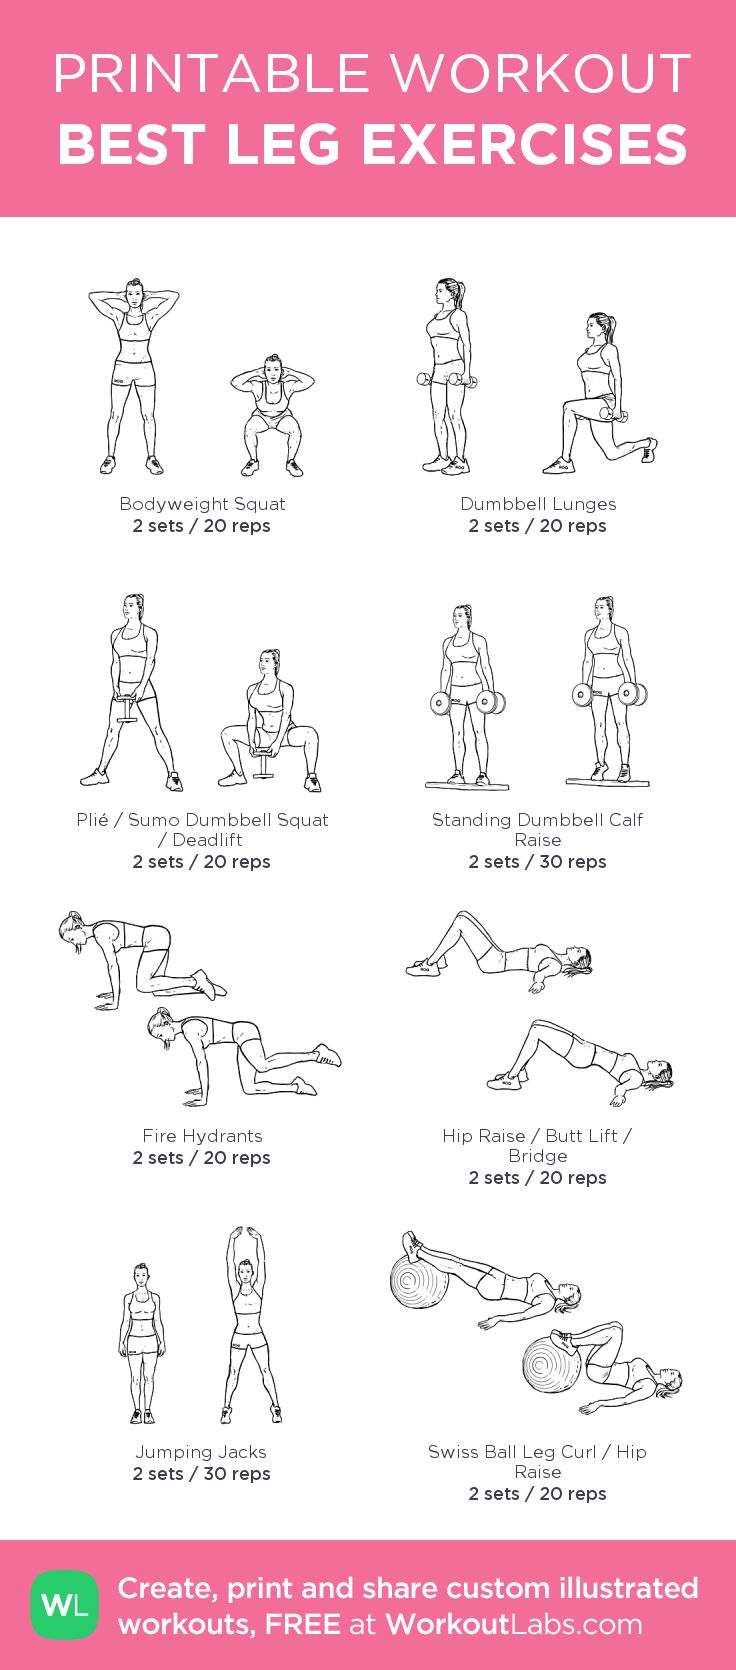 BEST LEG EXERCISES: my custom printable workout by @WorkoutLabs #workoutlabs #customworkout